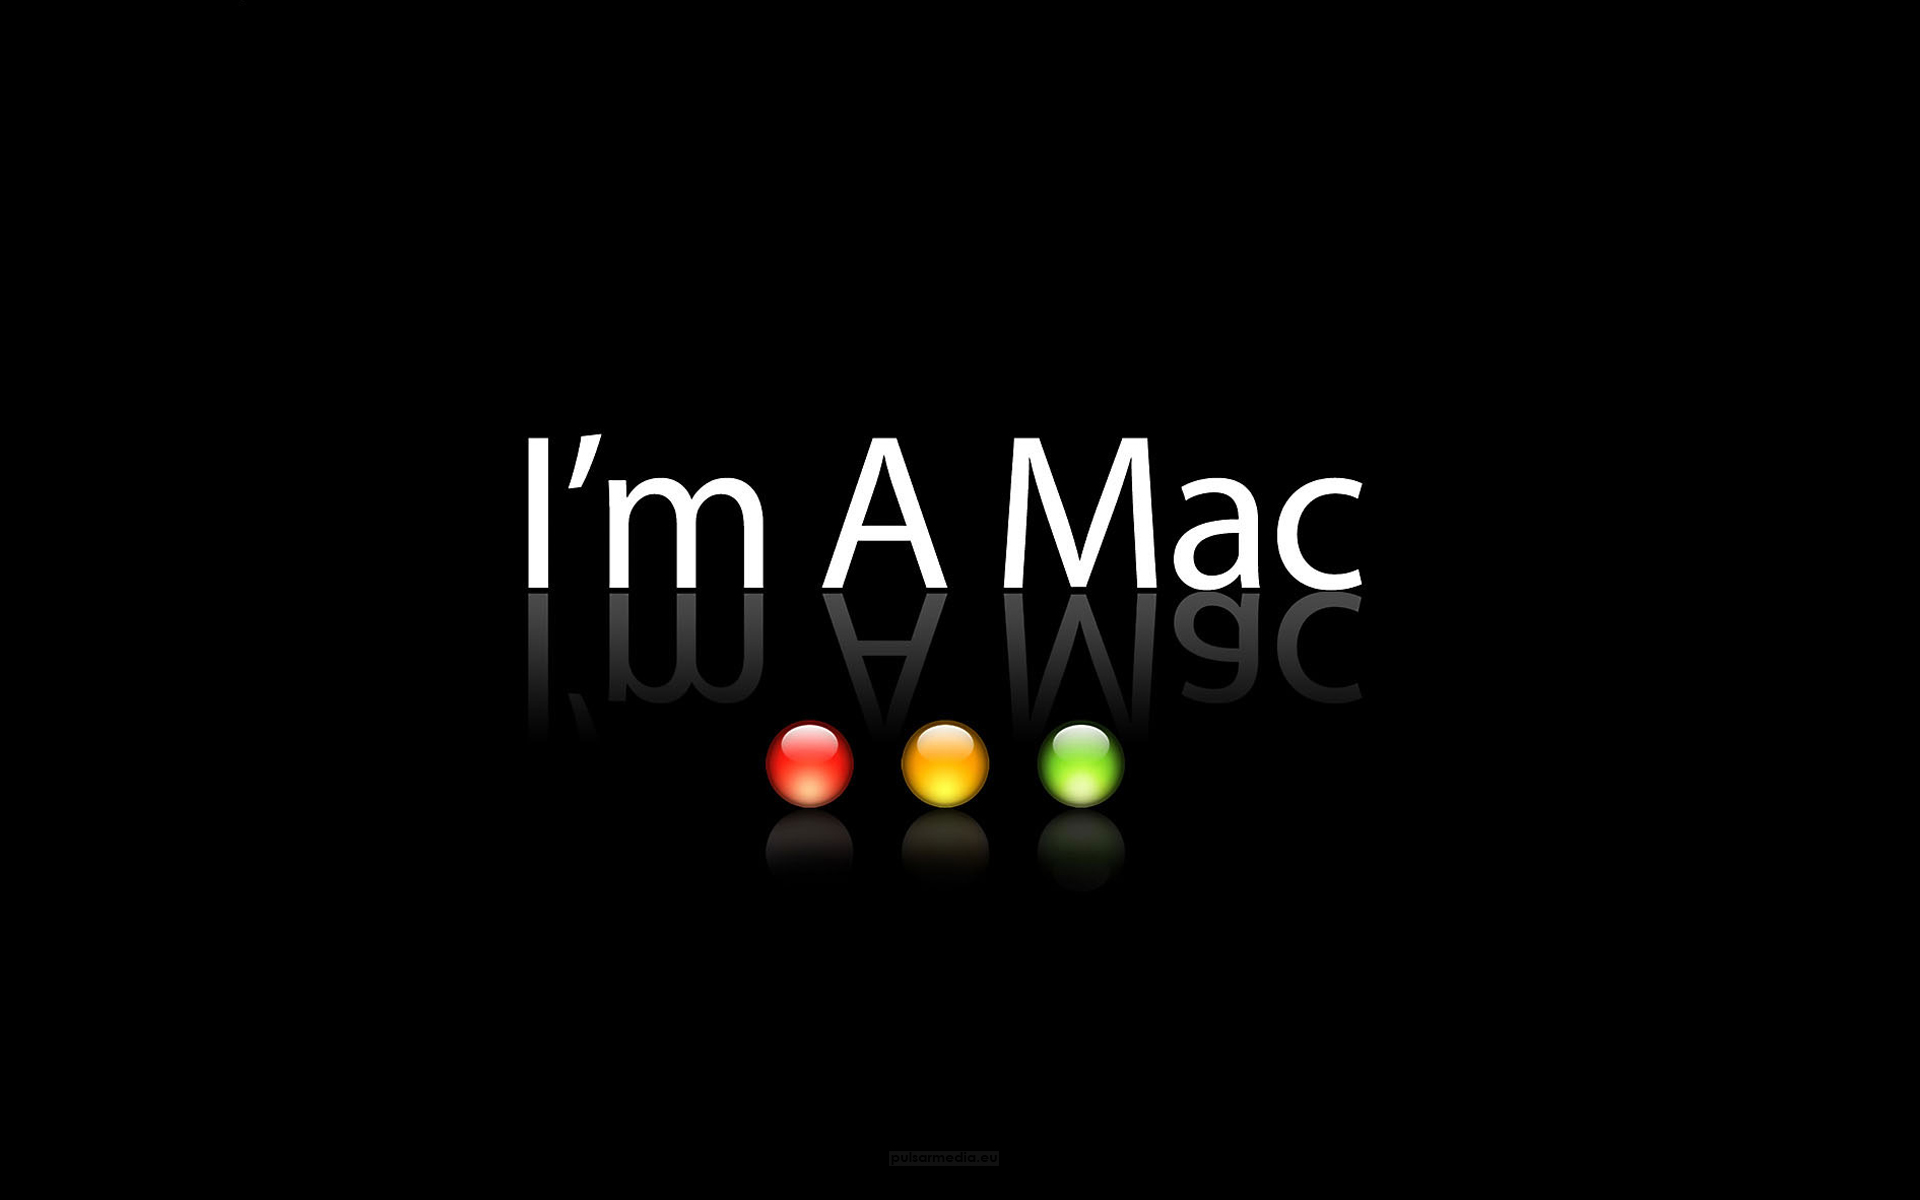 Mac Apple Image